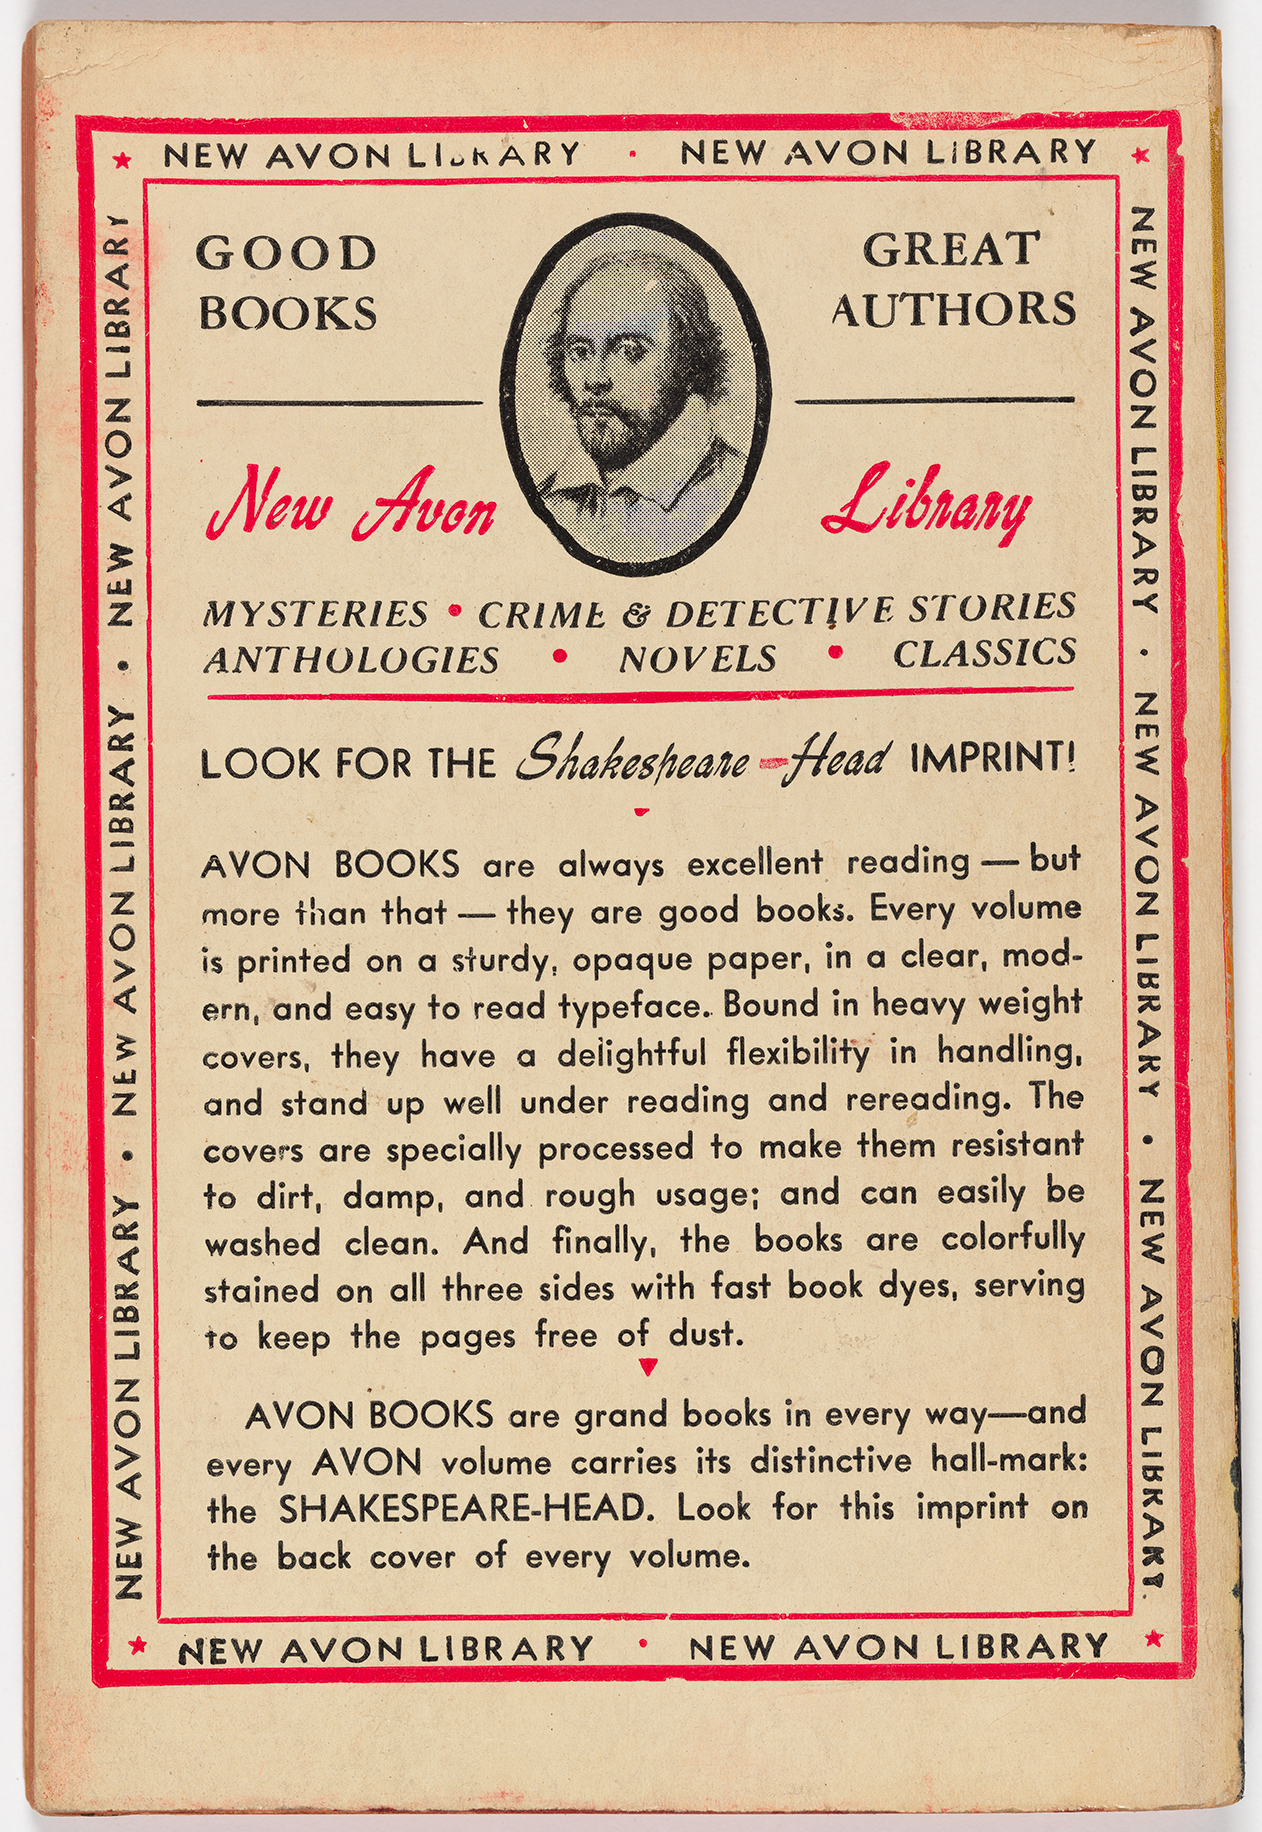 "The back cover is an advertisement for the publisher, ""New AVON Library."" There is a small illustration of William Shakespeare, between the taglines ""Good Books"" and ""Great Authors."" The text describes the quality of the books printed by AVON: ""AVON BOOKS are always excellent reading — but more than that — they are good books."" It praises the ""sturdy, opaque paper"" and ""clear, modern, and easy to read typeface."" The text also explains that every AVON  publication carries a ""distinctive hall-mark: the SHAKESPEARE HEAD."""